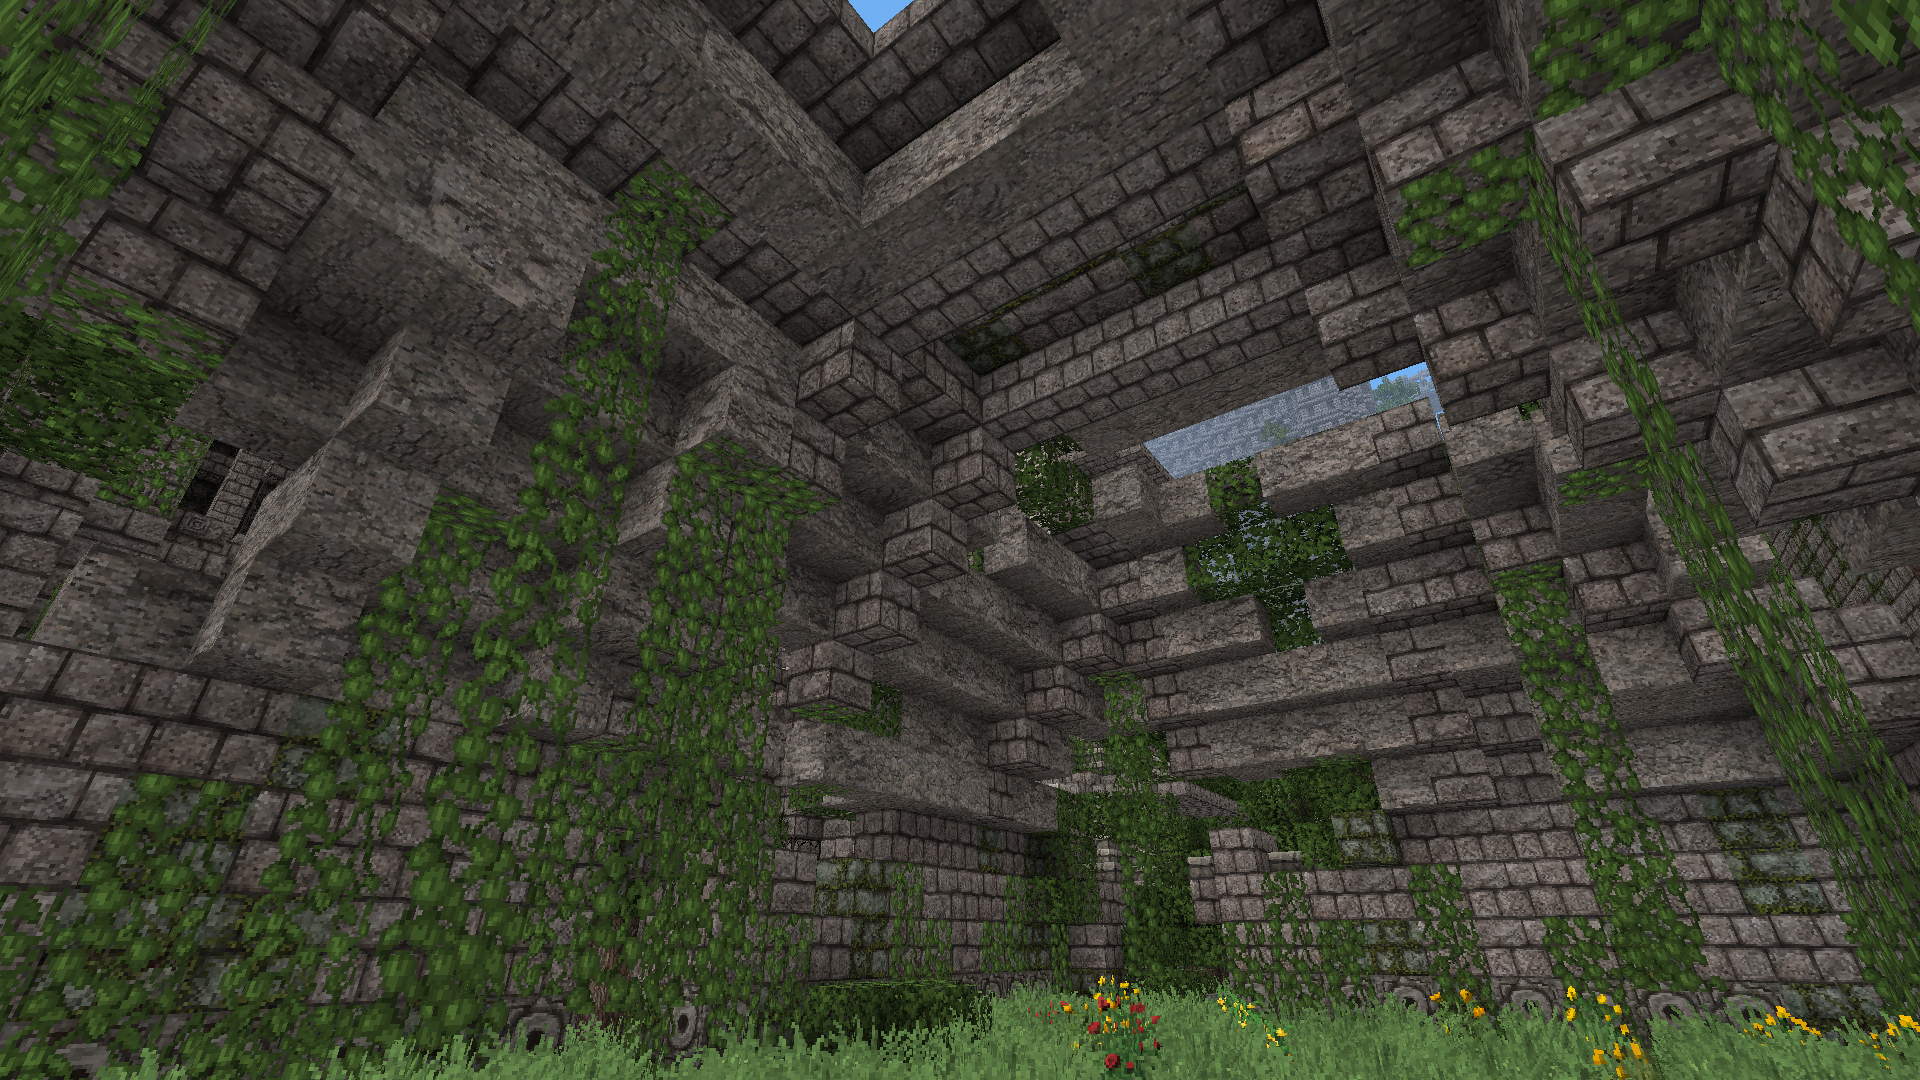 2012 09 13 21 39 29 1024x576 1 3 2 conquest texture pack 32x